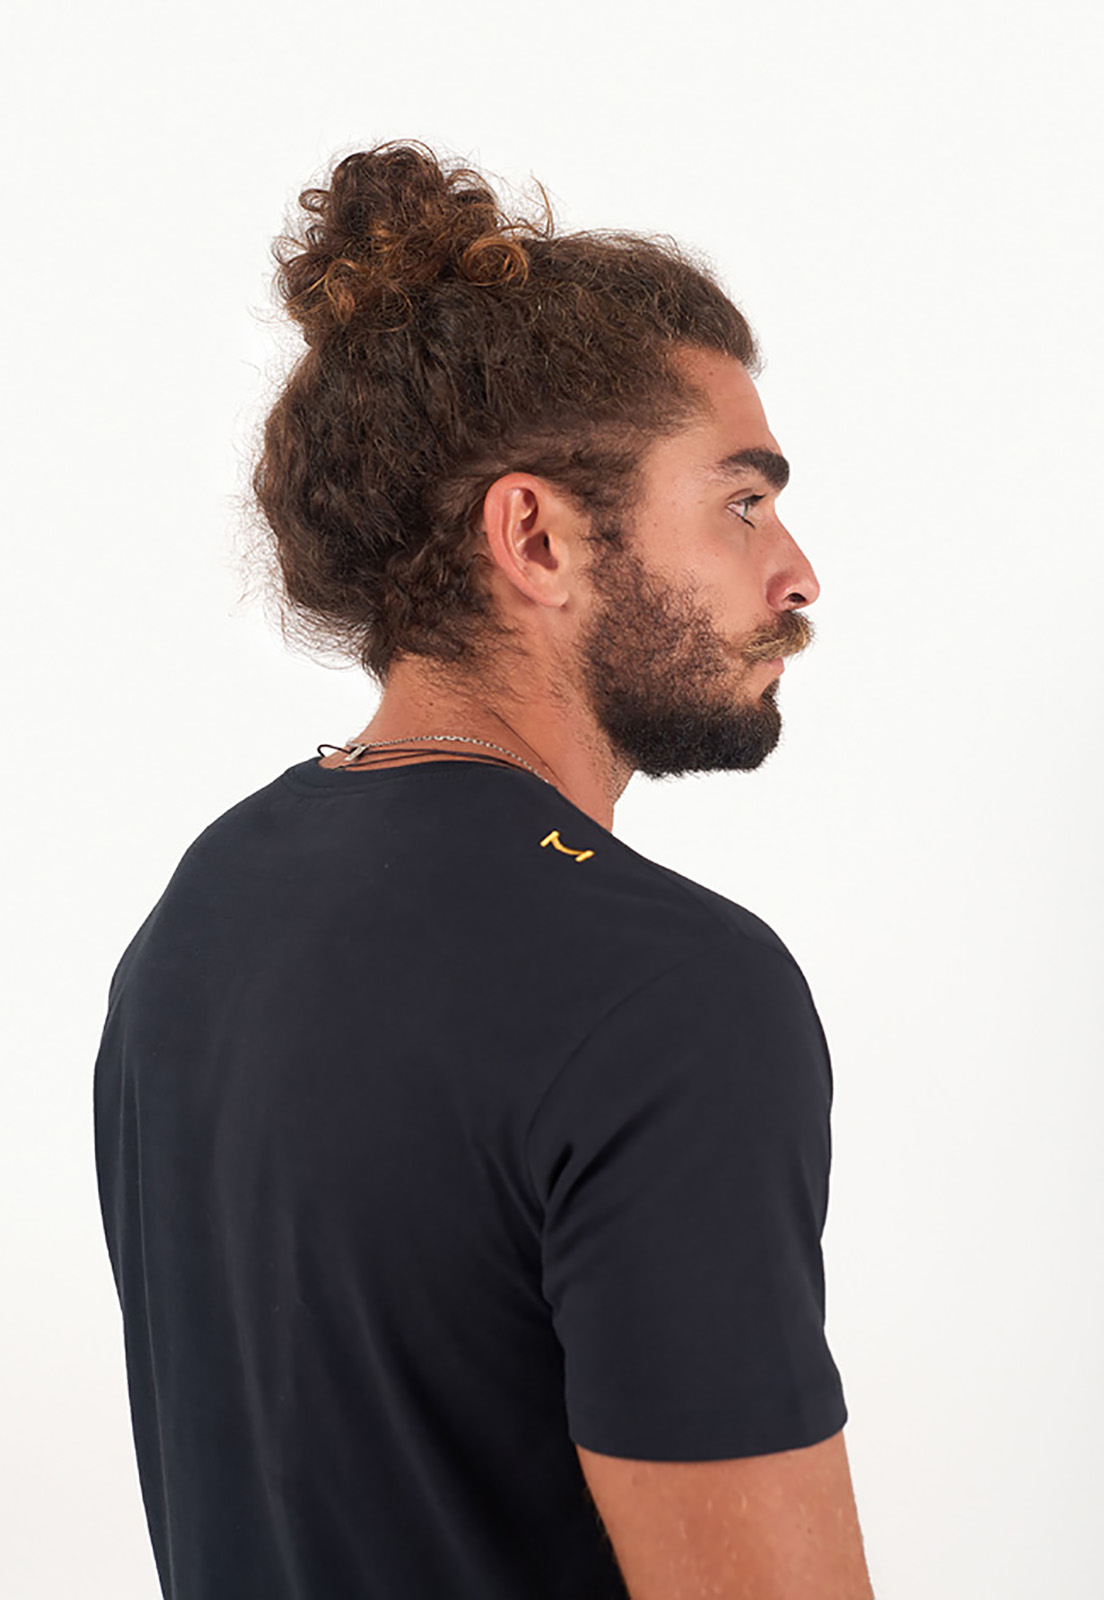 T-shirt Basic melty  - melty surf & Co.